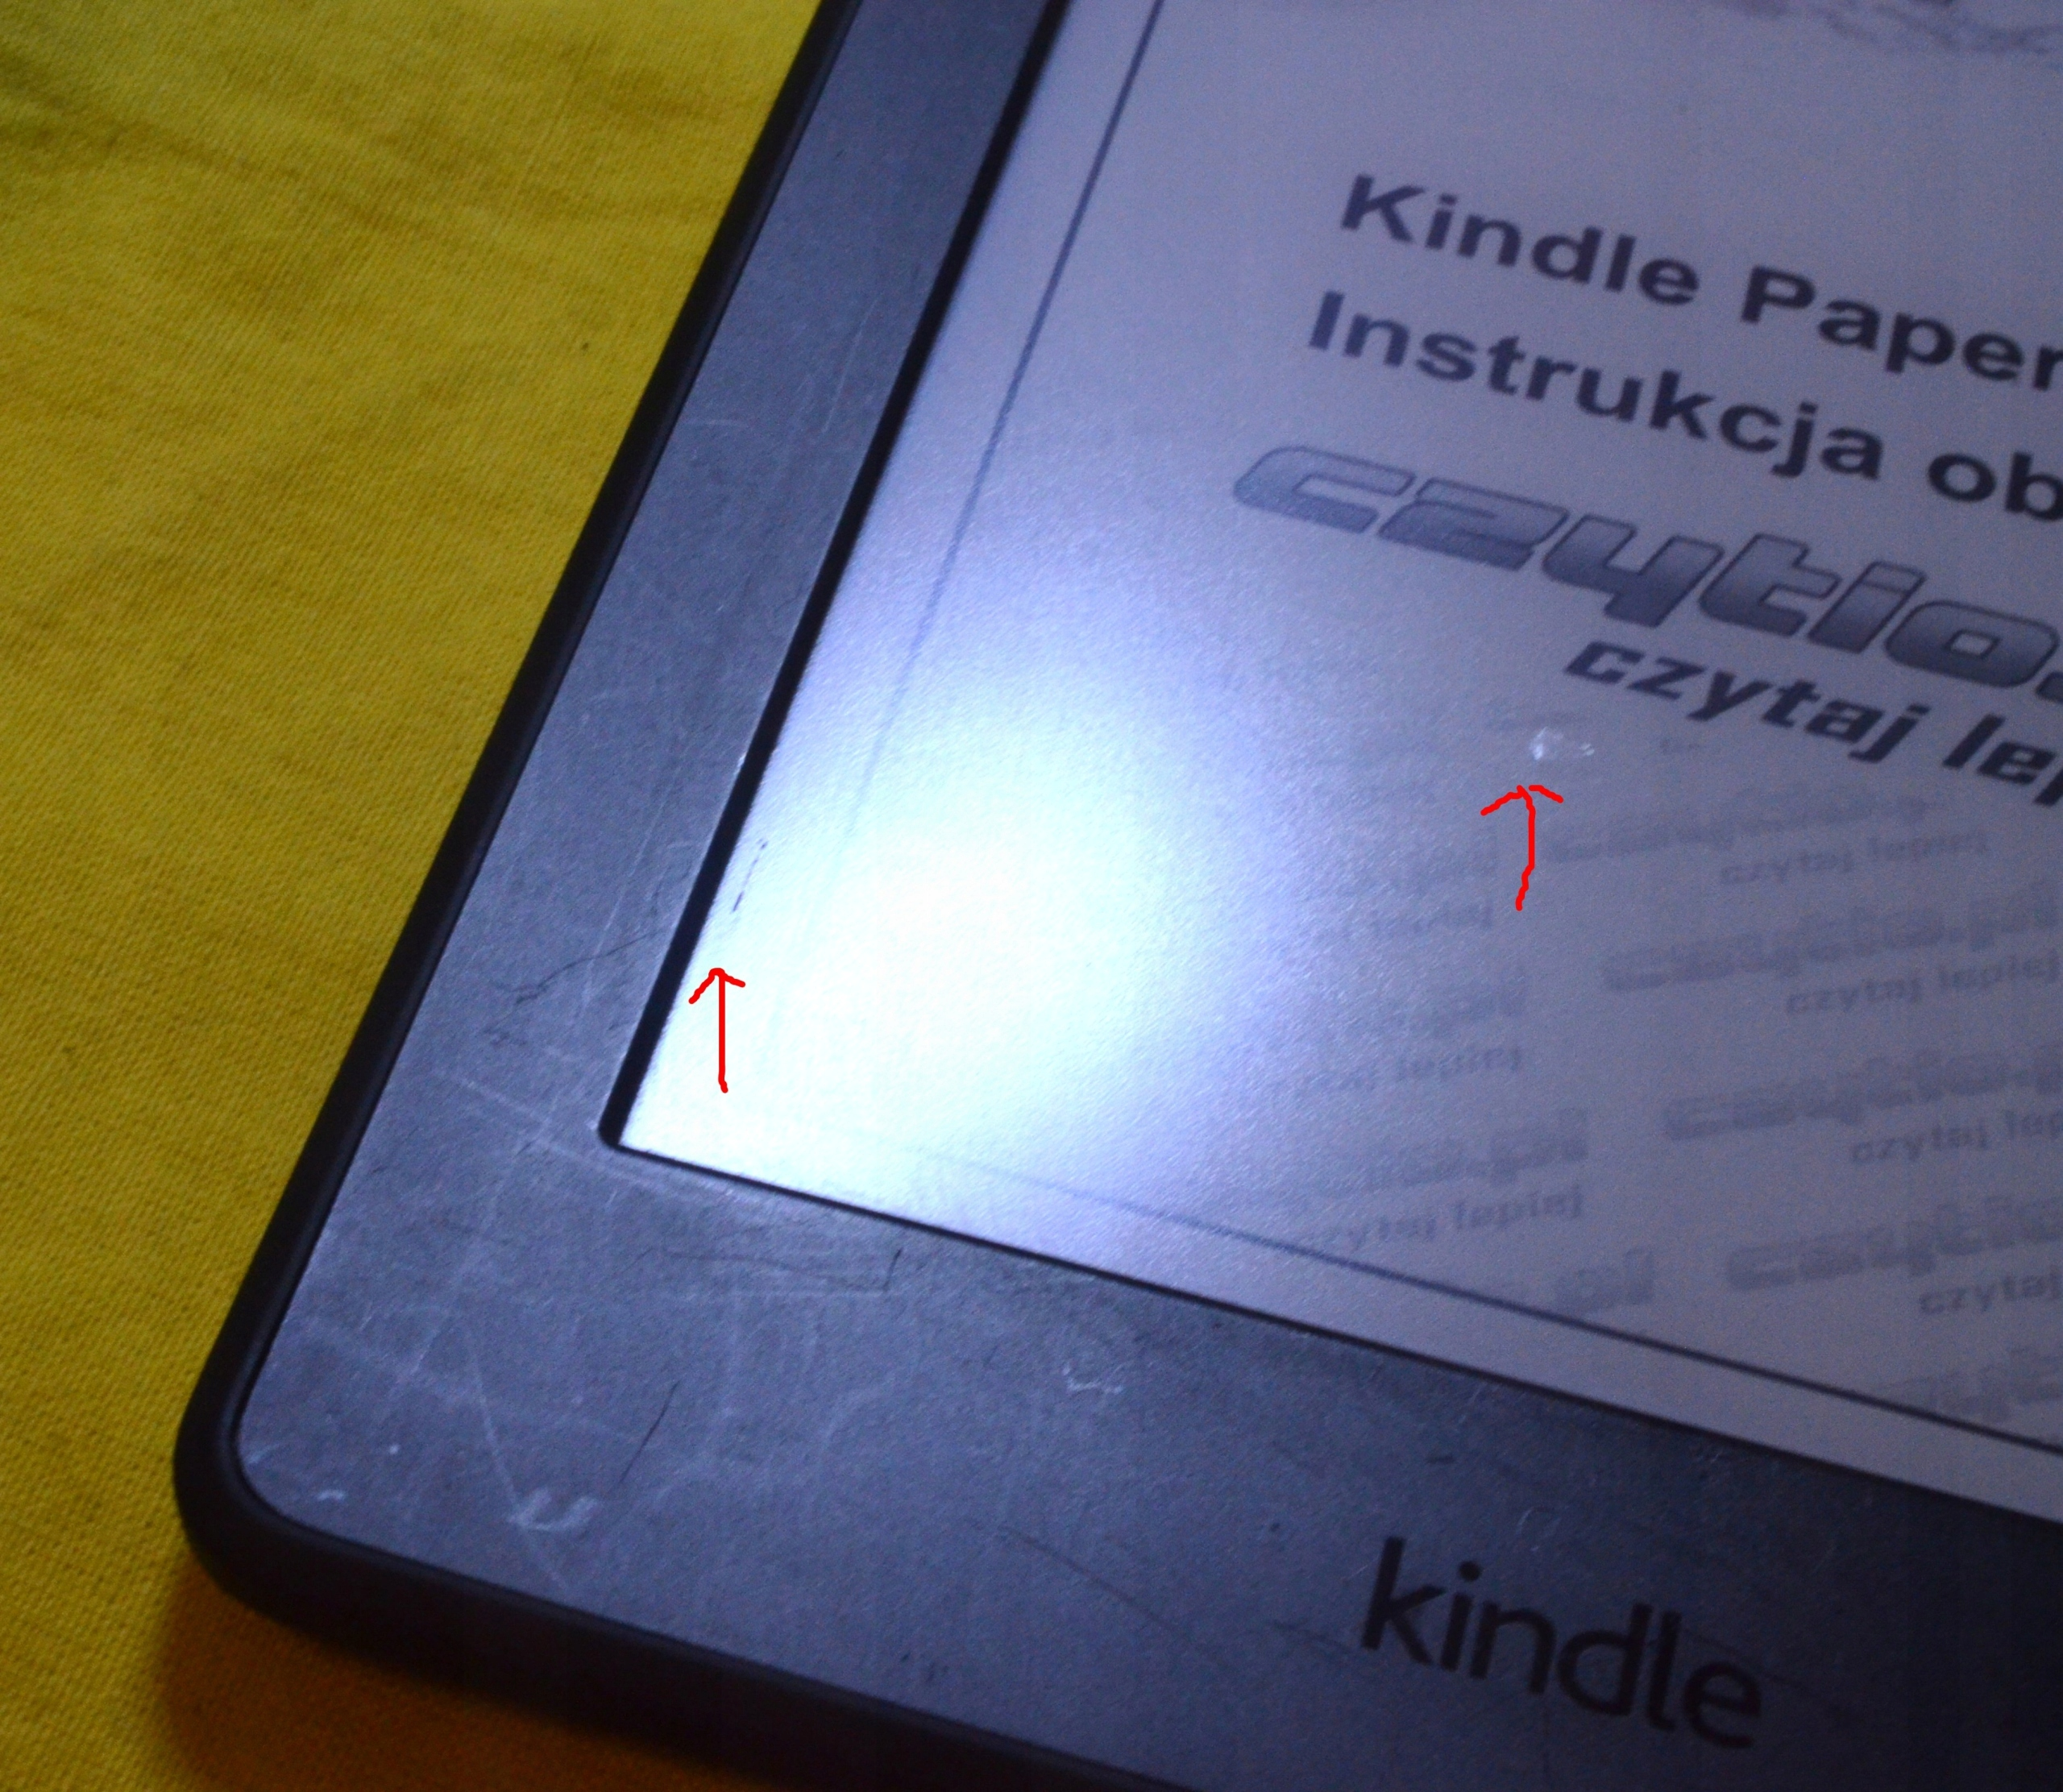 KINDLE PAPERWHITE 3 4GB WIFI G090 KABEL - 7490065344 - oficjalne